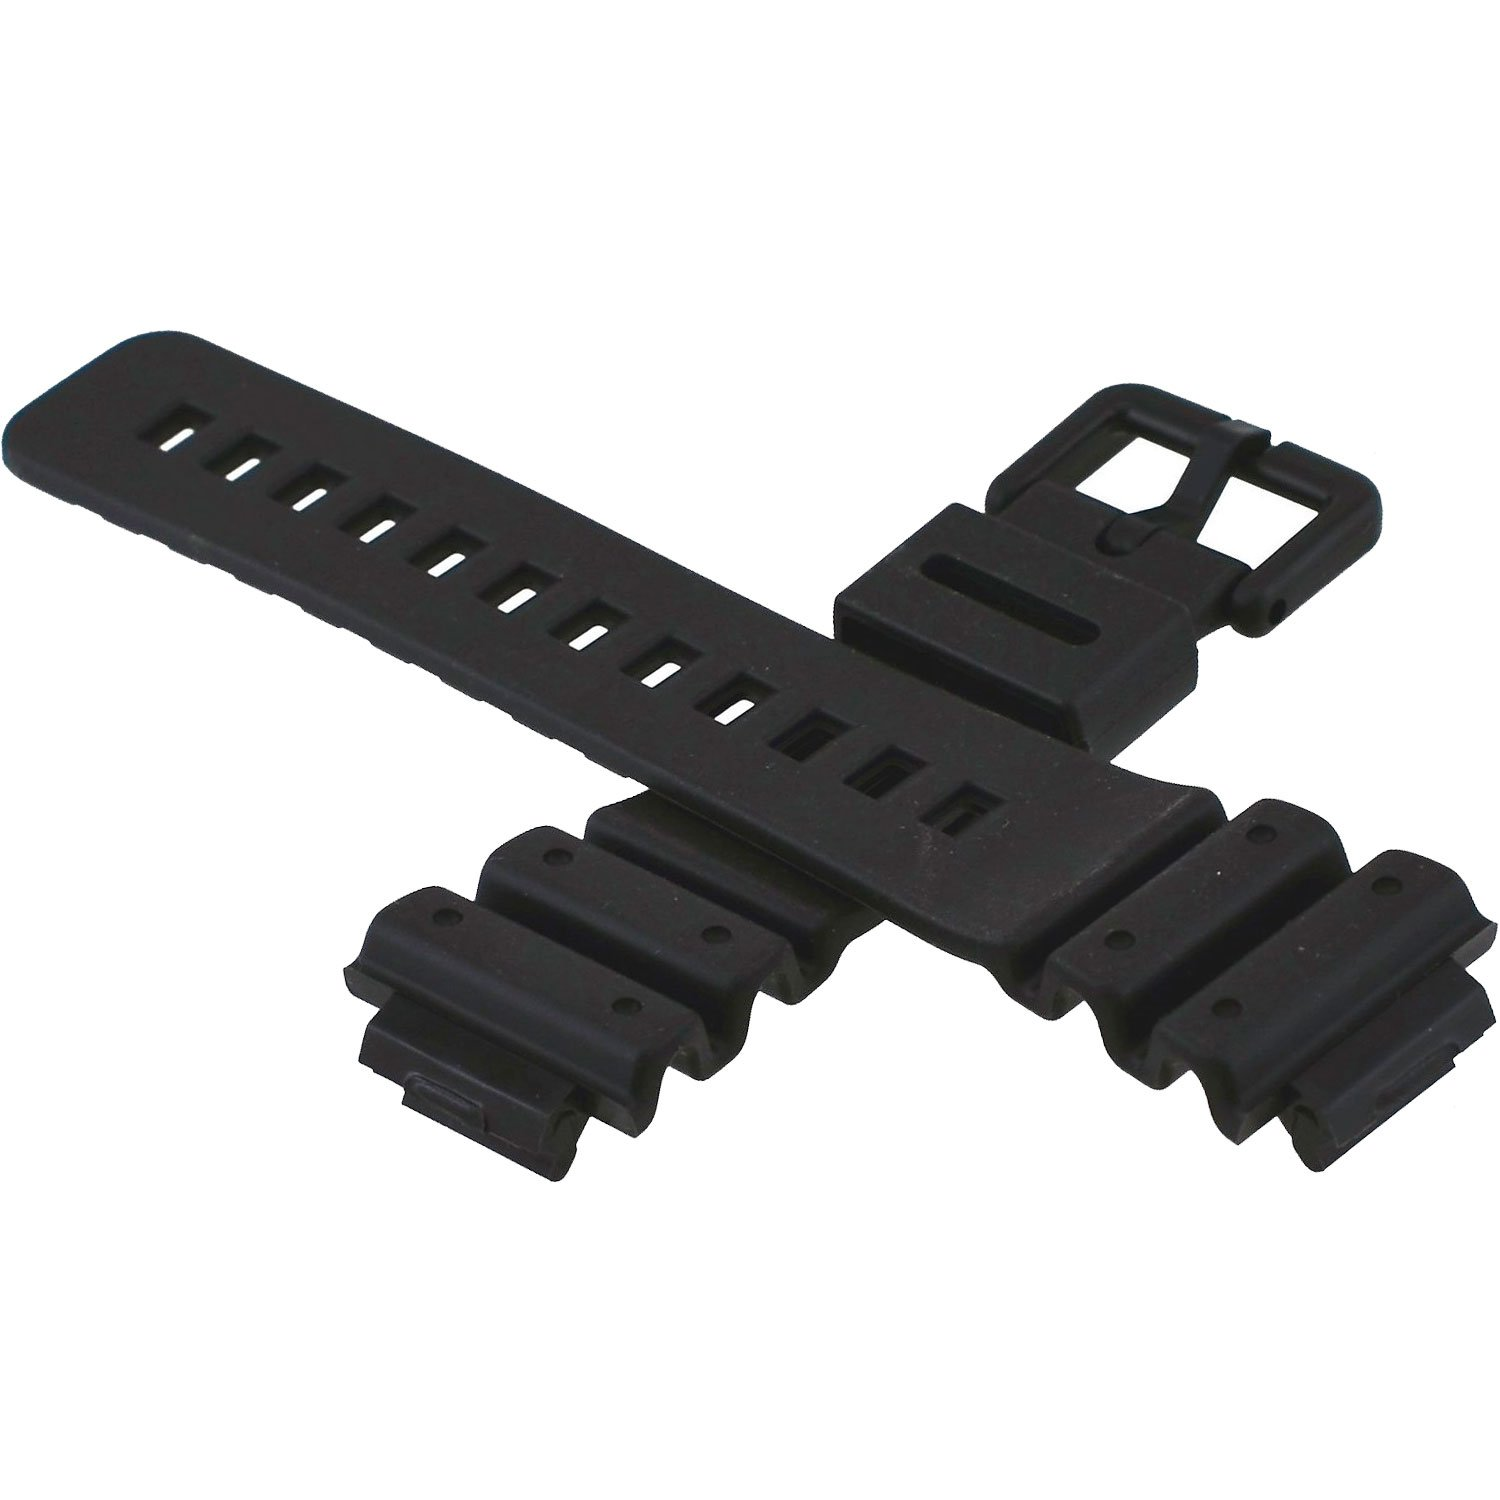 Casio Genuine Replacement Strap/band for G Shock Watch Model # Dw6900g-1v